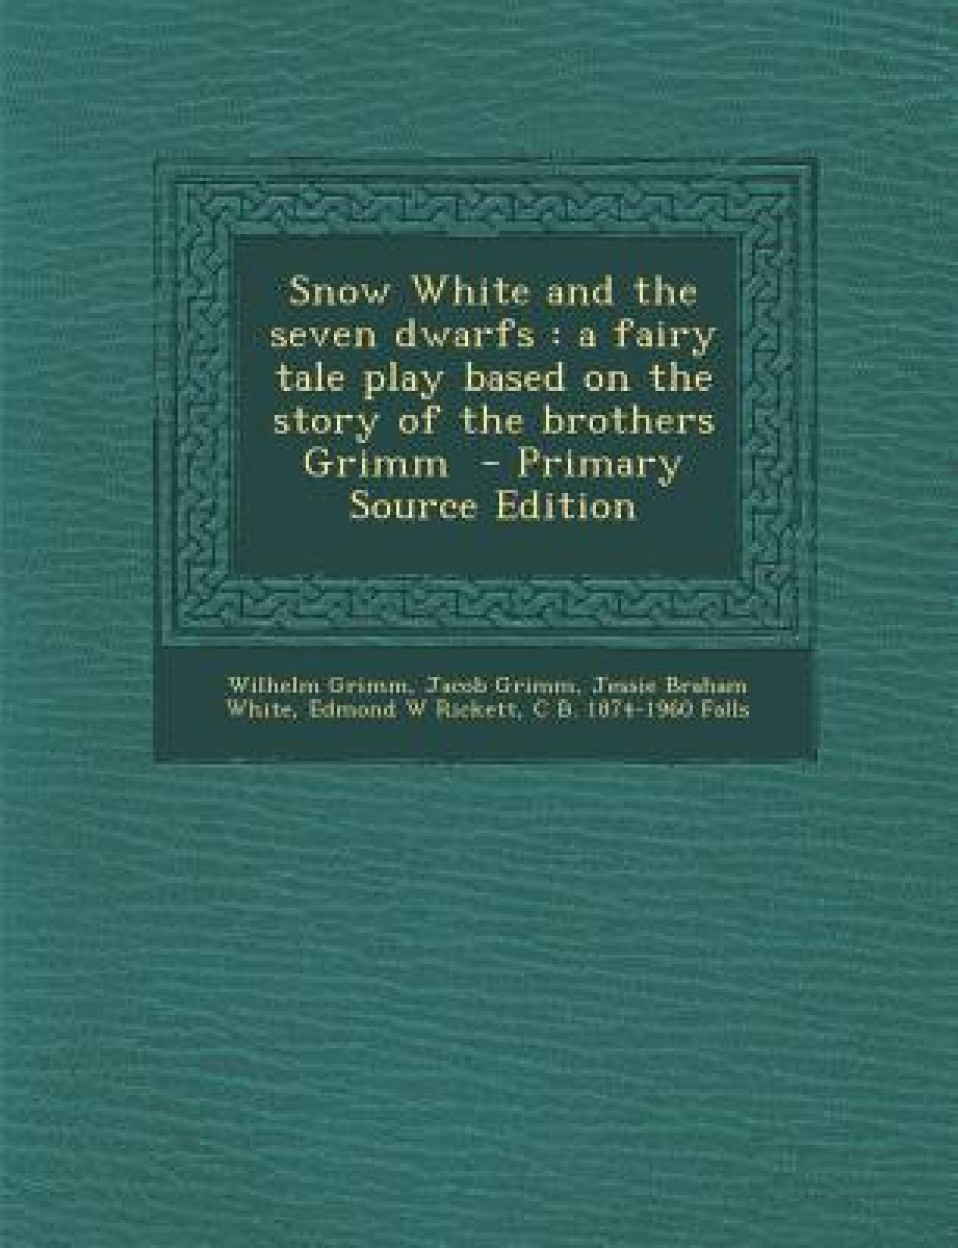 Snow White and the Seven Dwarfs: A Fairy Tale Play Based on the Story of the Brothers Grimm - Primary Source Edition (English) (Paperback)